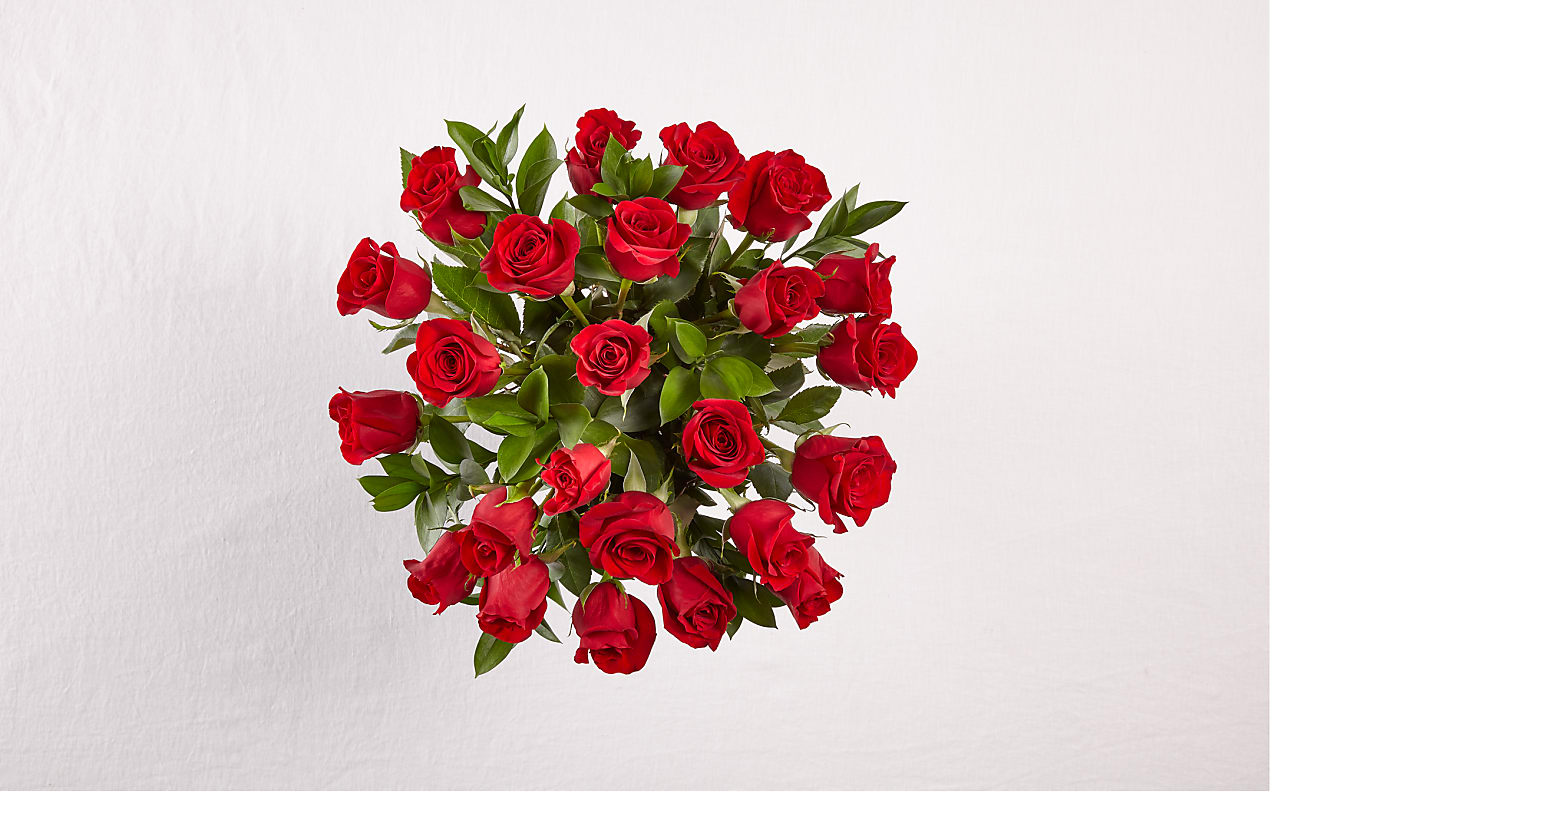 24 Red Roses with Glass Vase - Image 2 Of 5